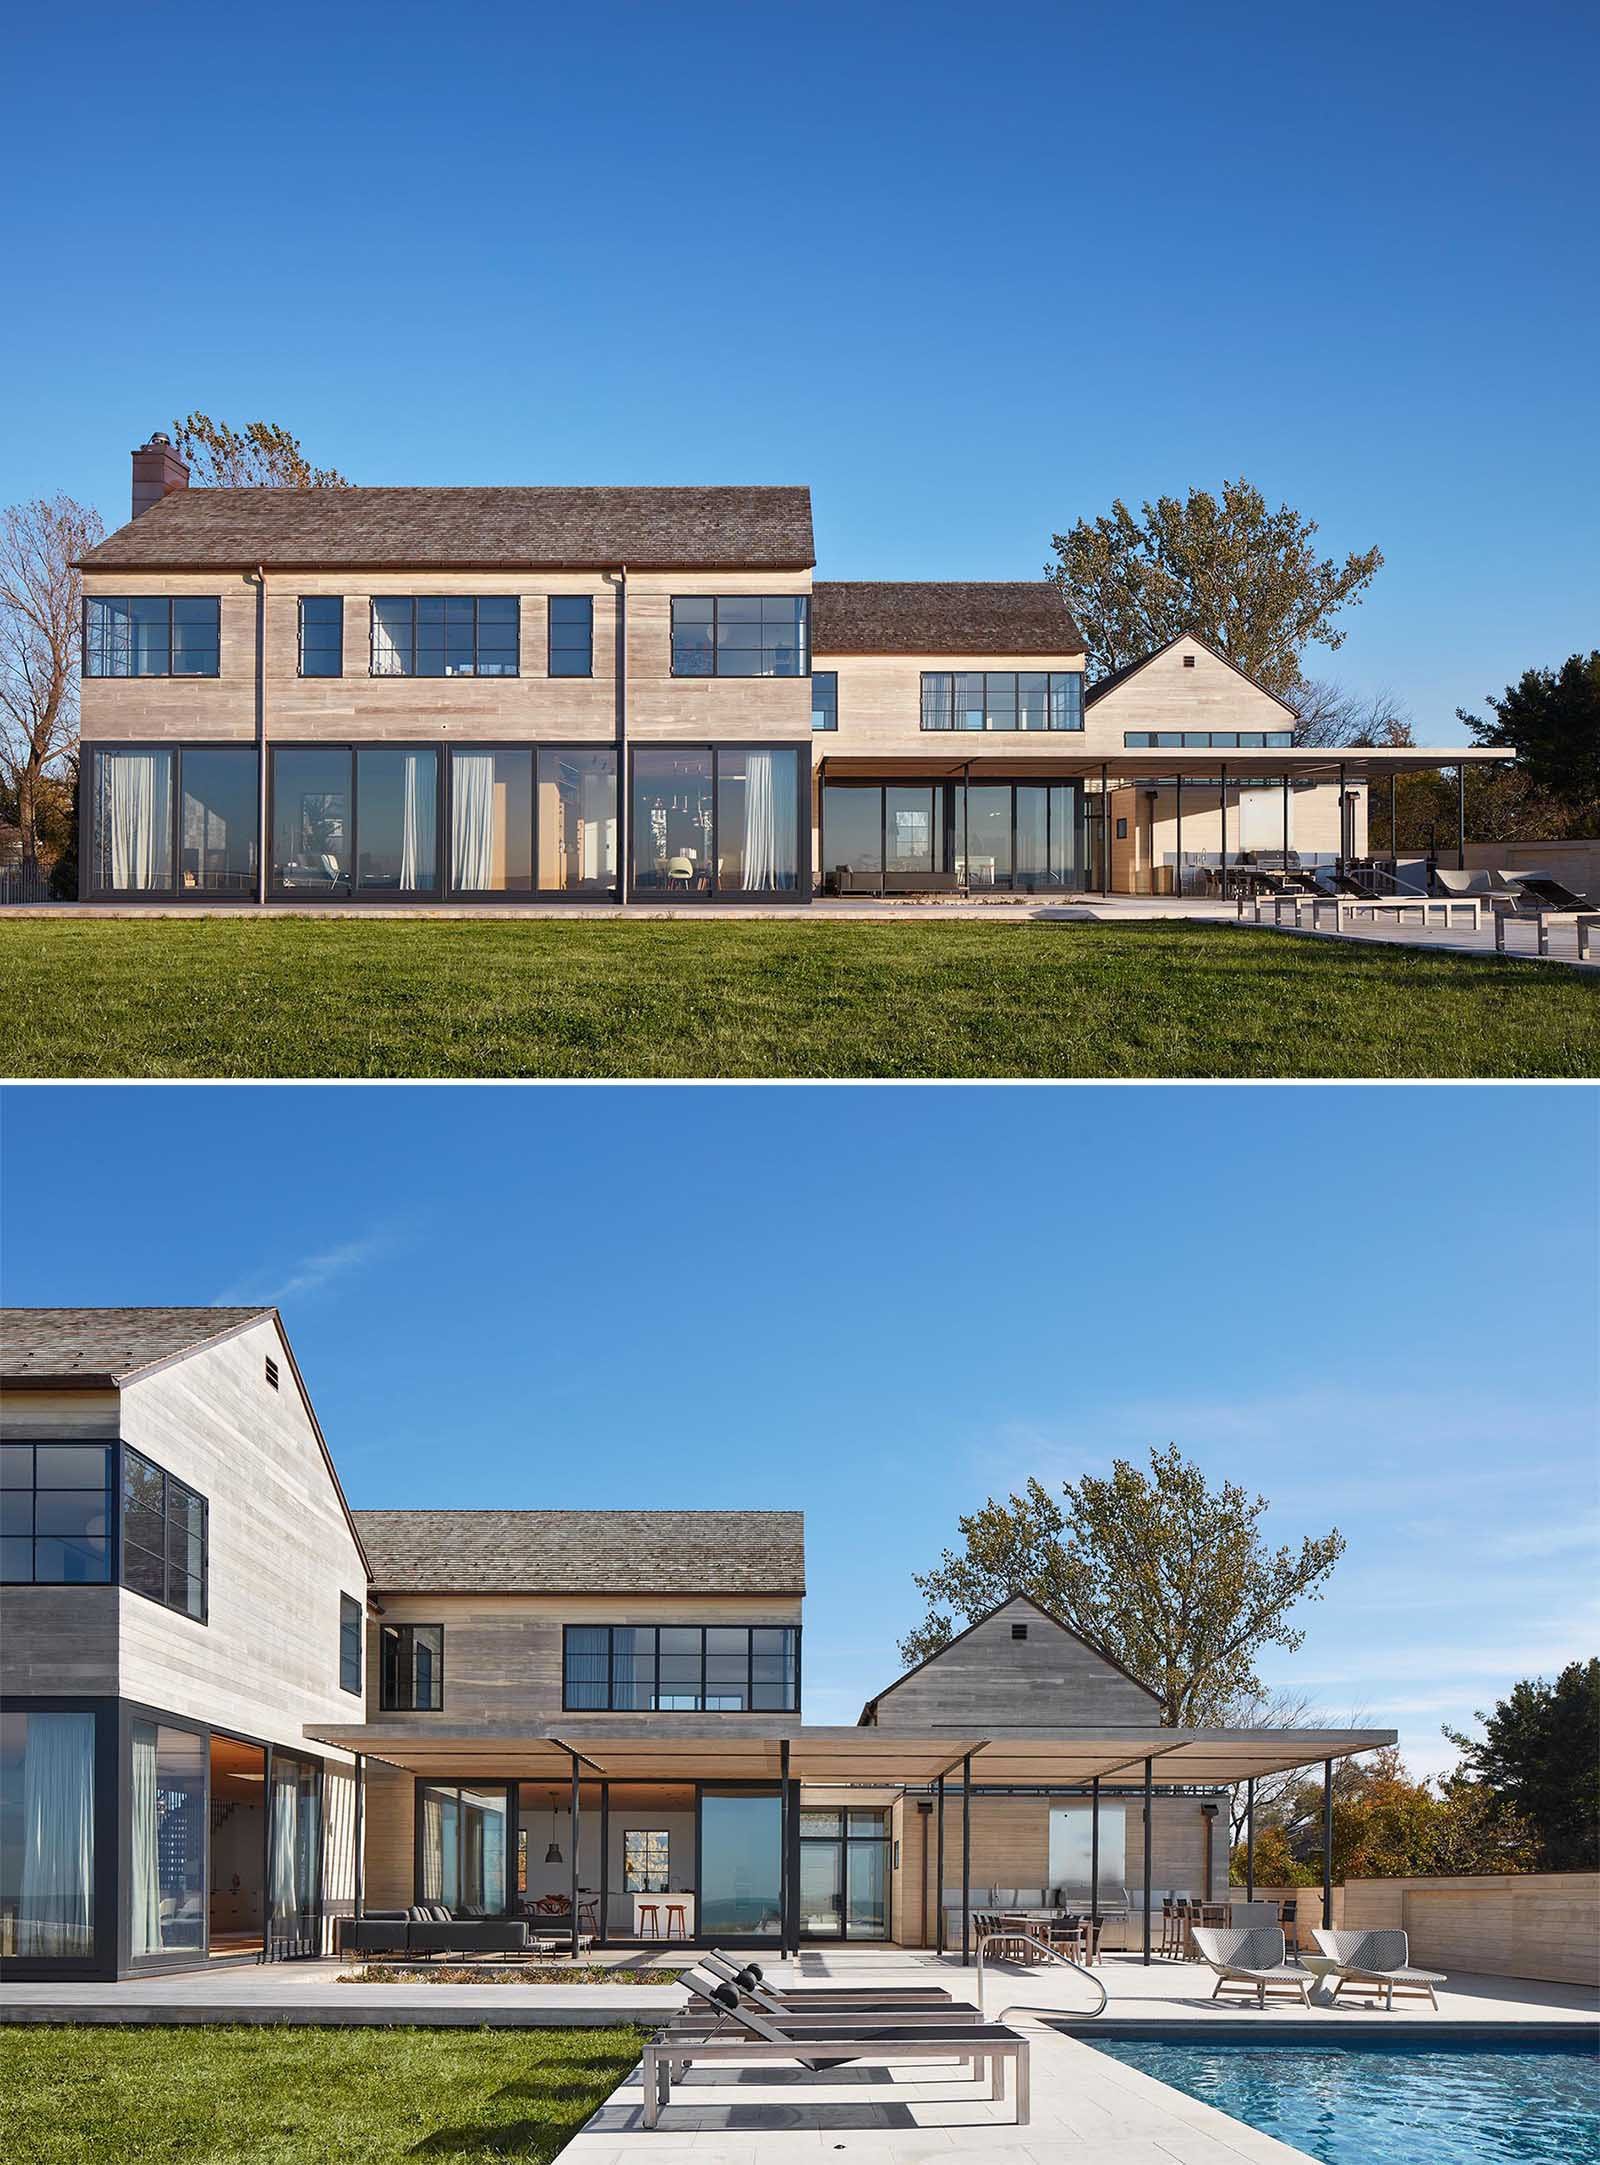 The Accoya wood siding of this modern home complements the cedar shingles that have been used on the roof, both of which will weather gracefully in the constant wind coming off the lake.